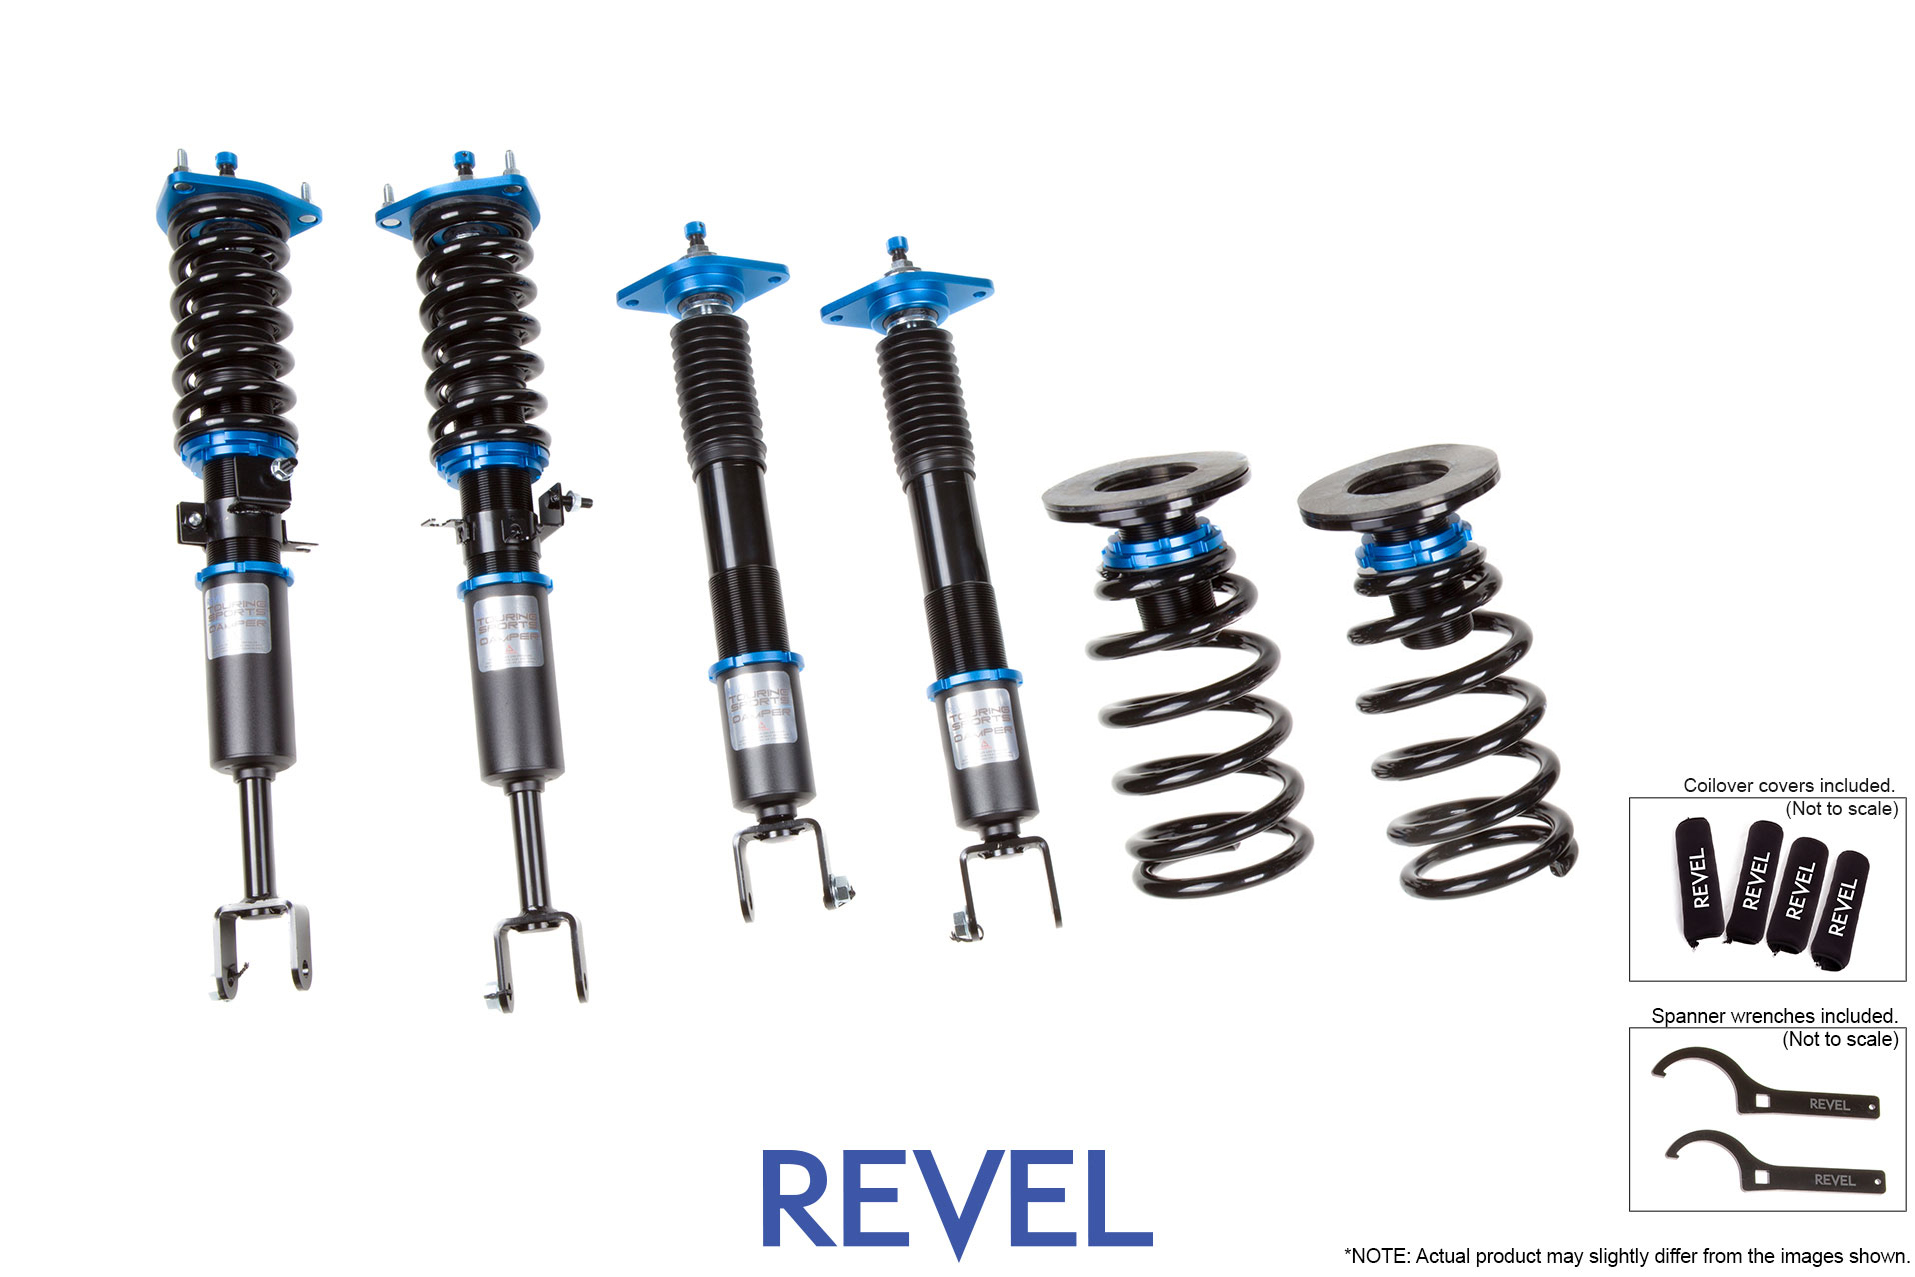 Revel TSD Coilovers for 03-07 Infiniti G35 Coupe, 03-06 Infiniti G35 Sedan RWD, 03-08 Nissan 350Z